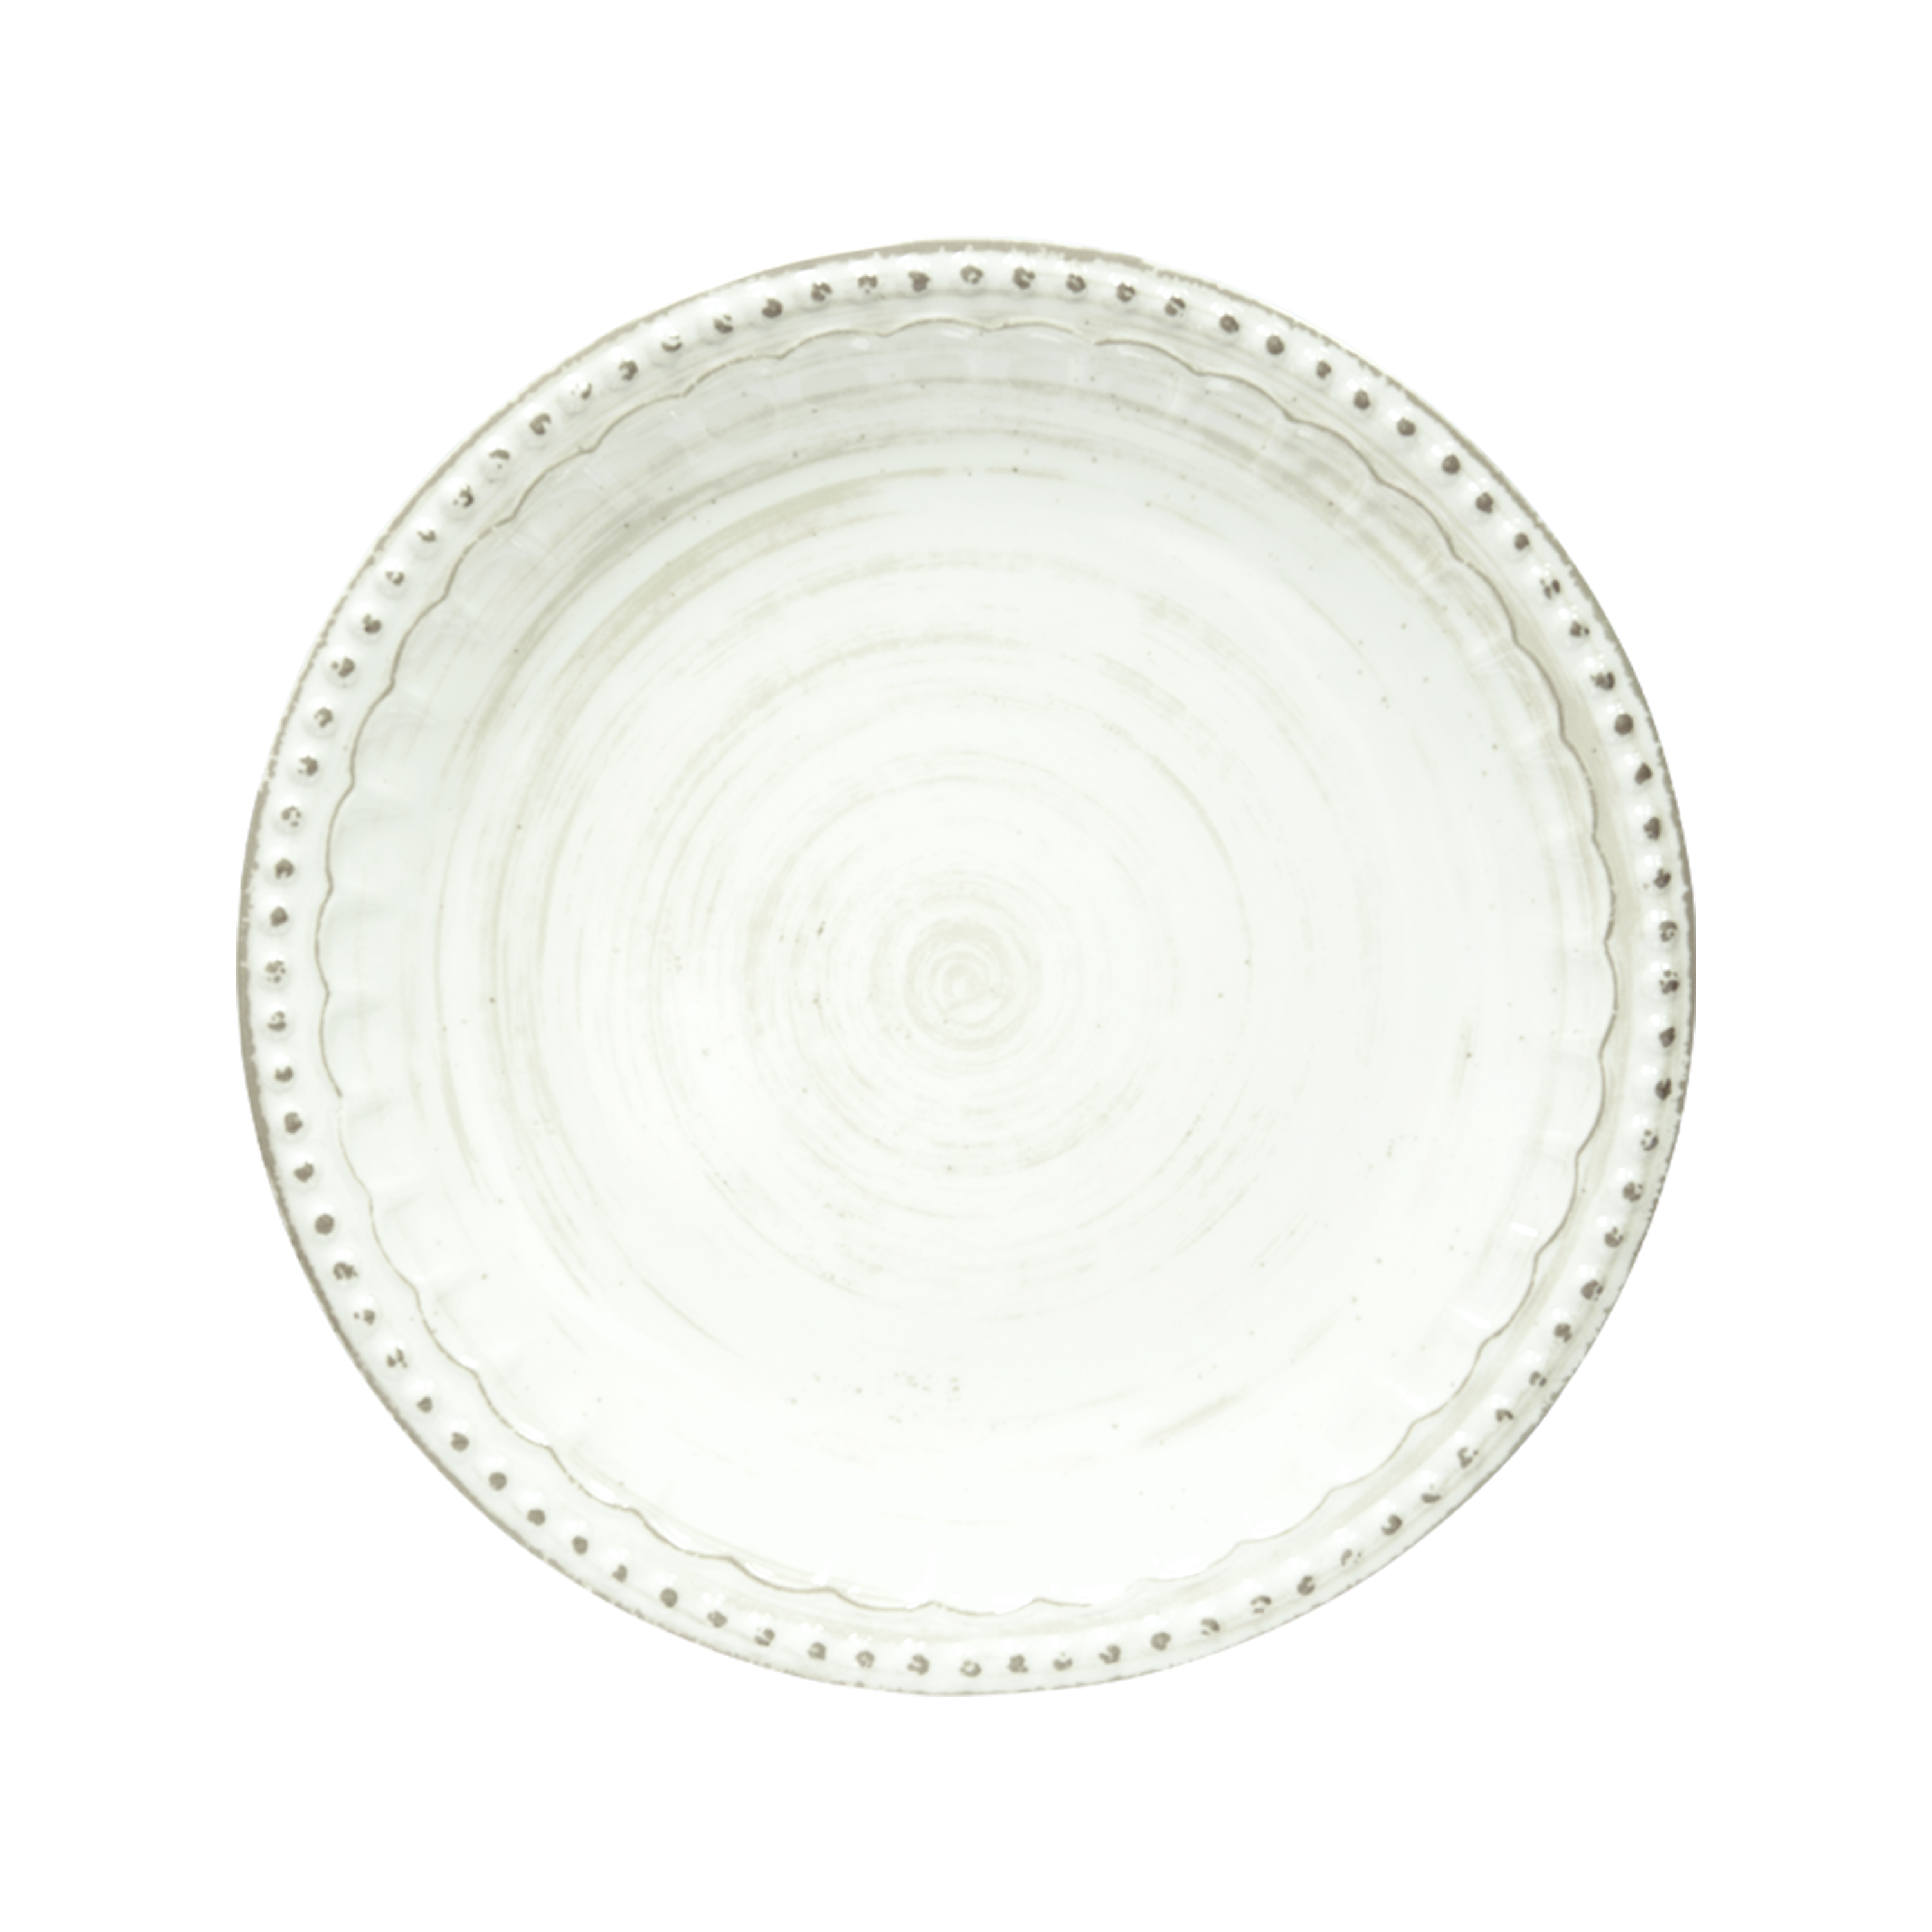 French Country Plate & Bowl Sets, White, 12-piece set slideshow image 7